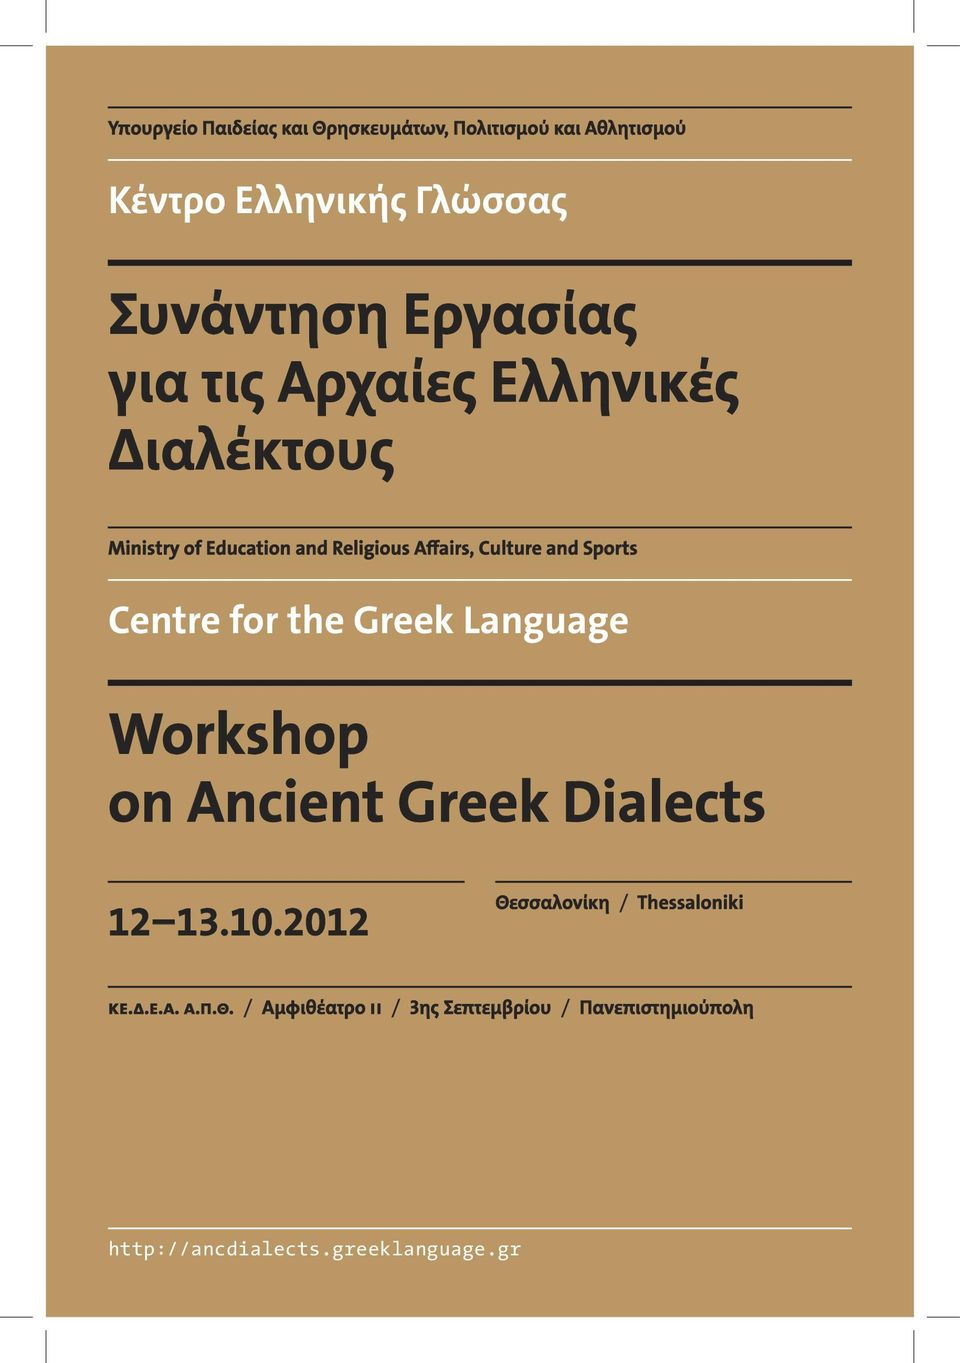 Culture and Sports Workshop on Ancient Greek Dialects 12 13.10.2012 Θεσσαλονίκη / Thessaloniki ΚΕ.